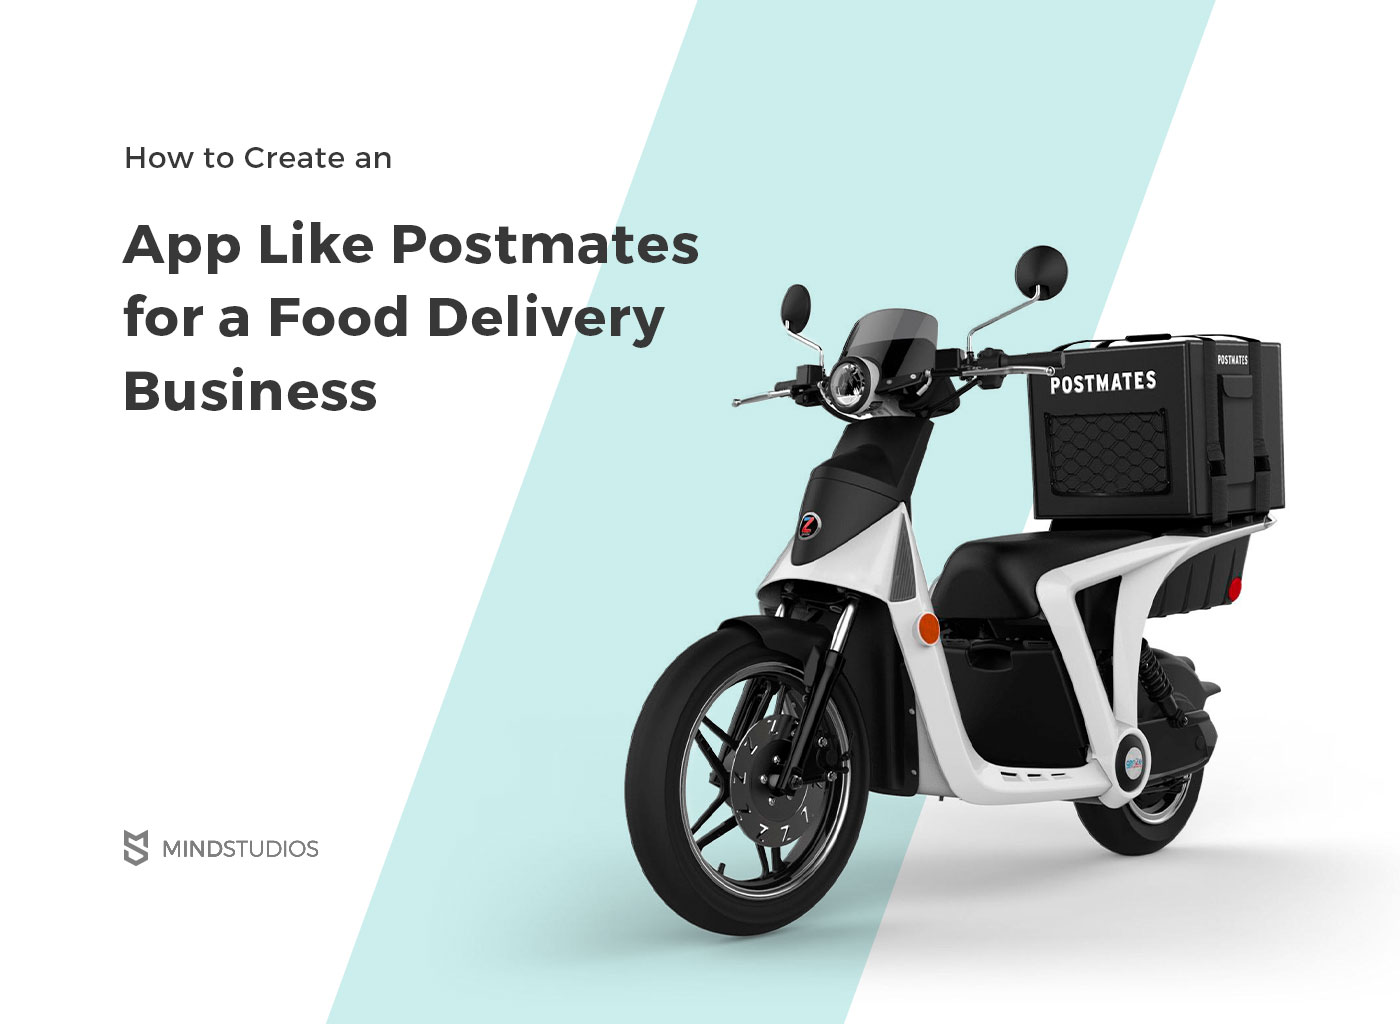 How to Create an App Like Postmates for a Food Delivery Business